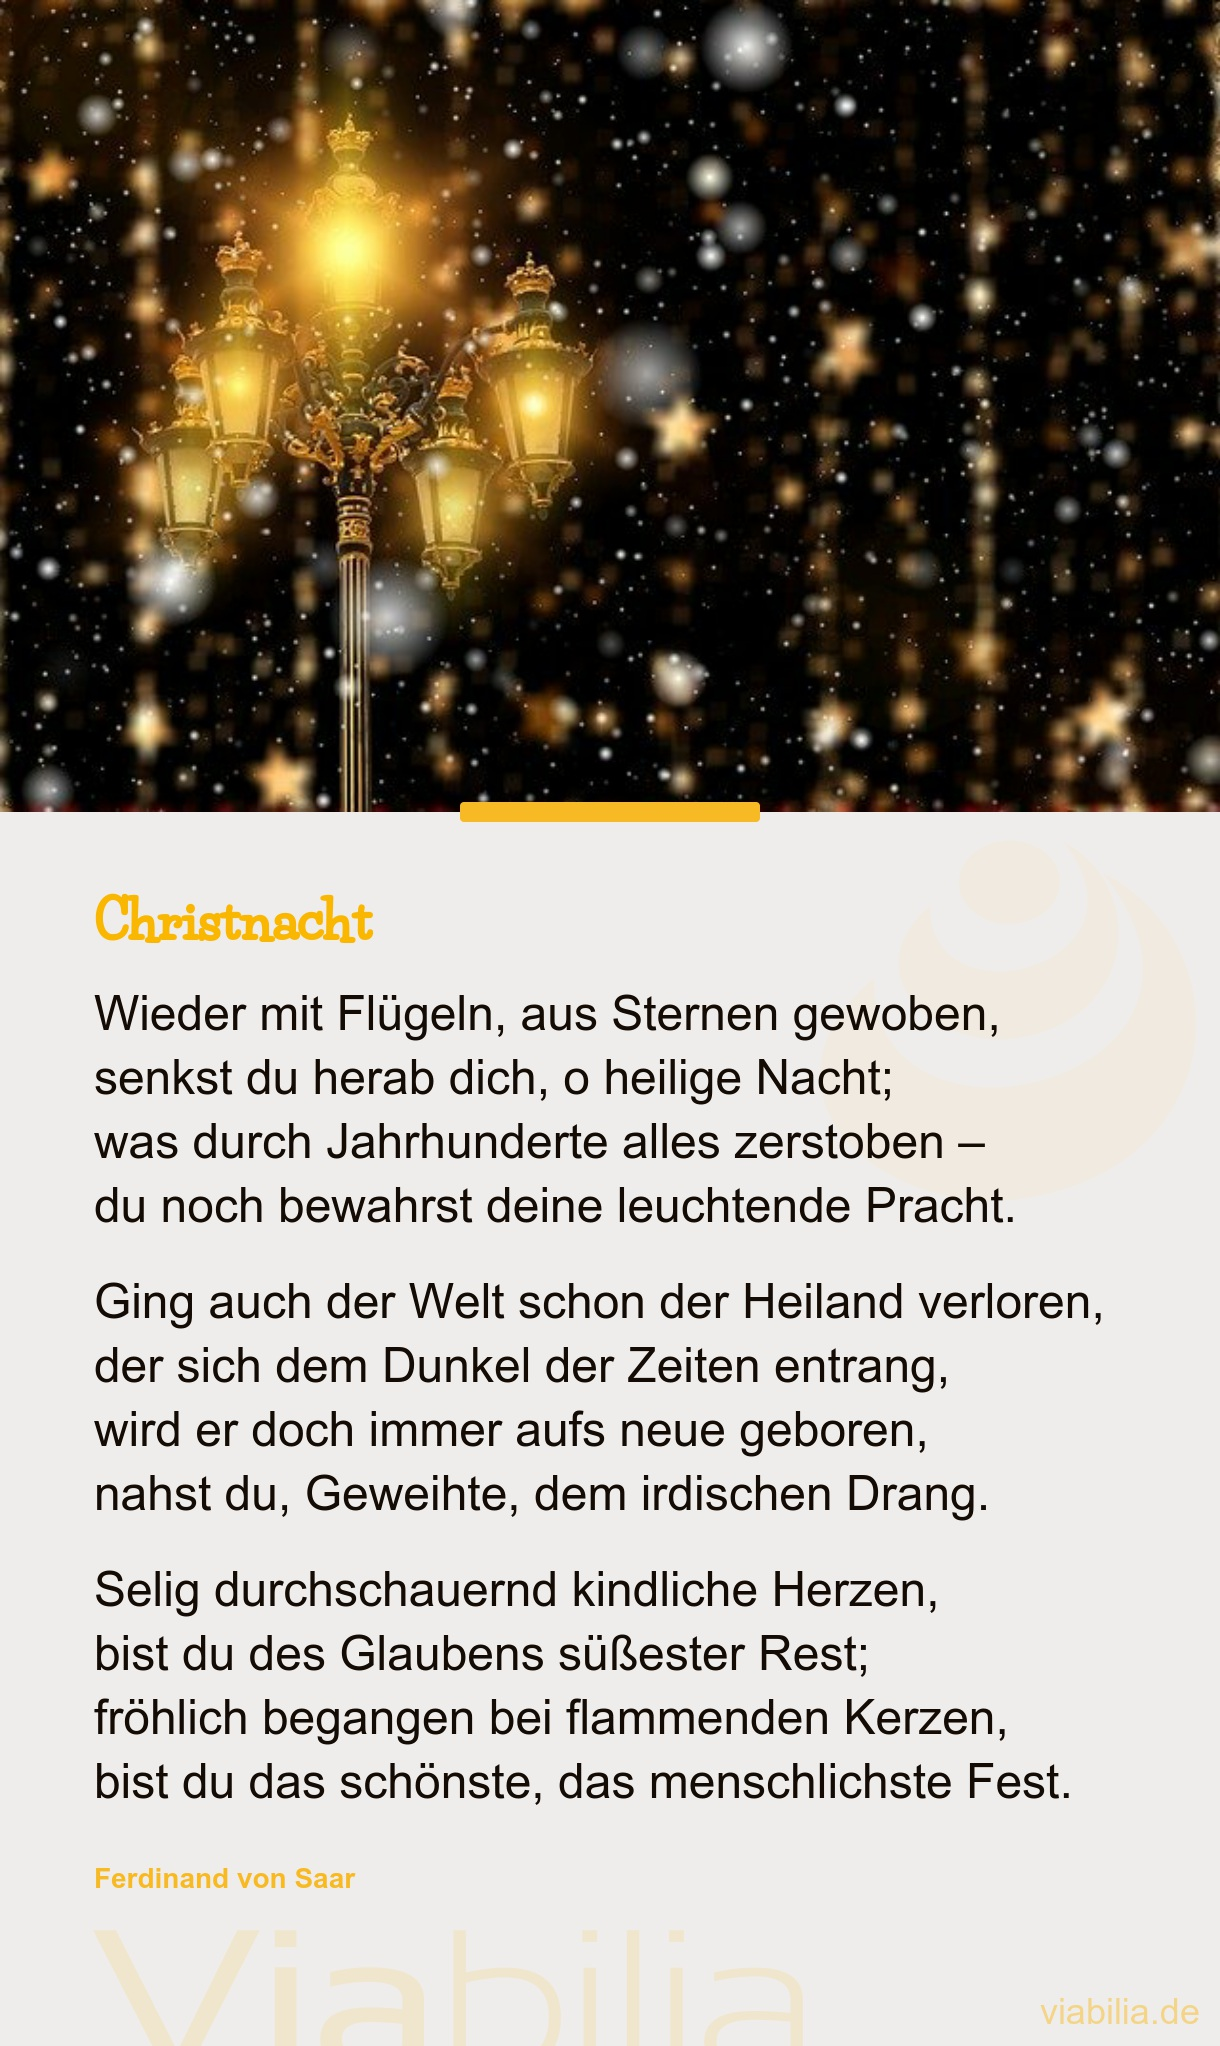 Traditionelles Gedicht: Christnacht